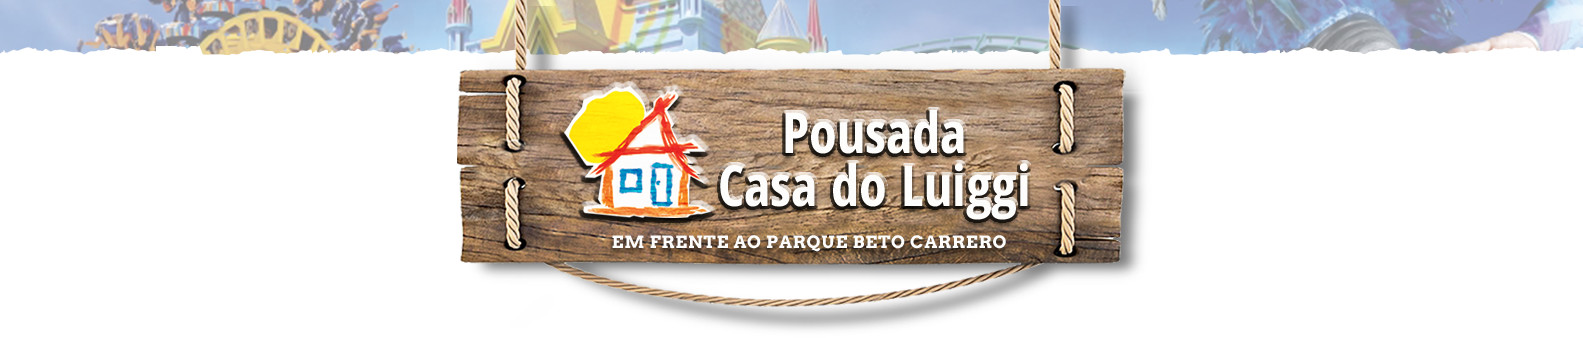 Logotipo Pousada Casa do Luiggi